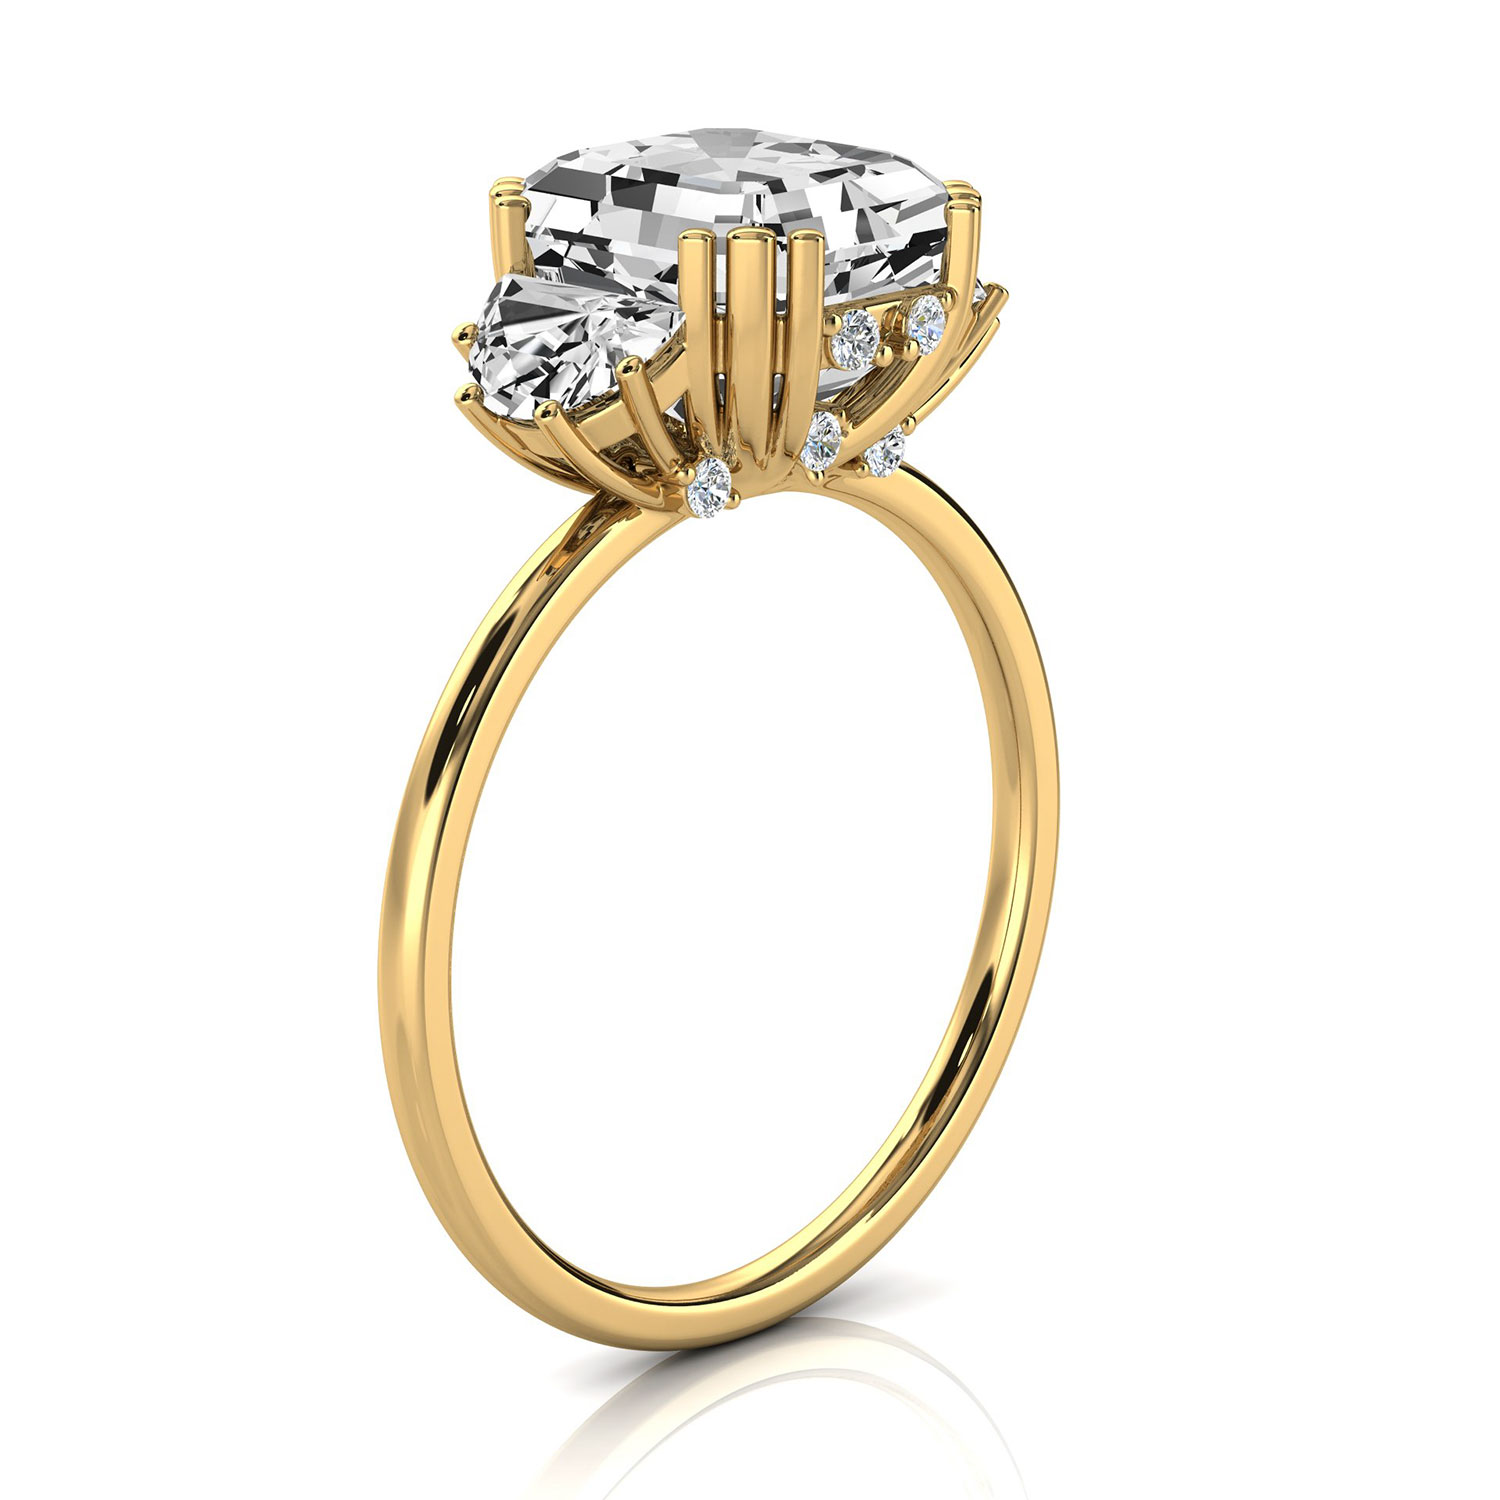 14K Yellow Gold Vale Organic Half Moon & Round Diamond Ring ( 1/2 ct. tw)